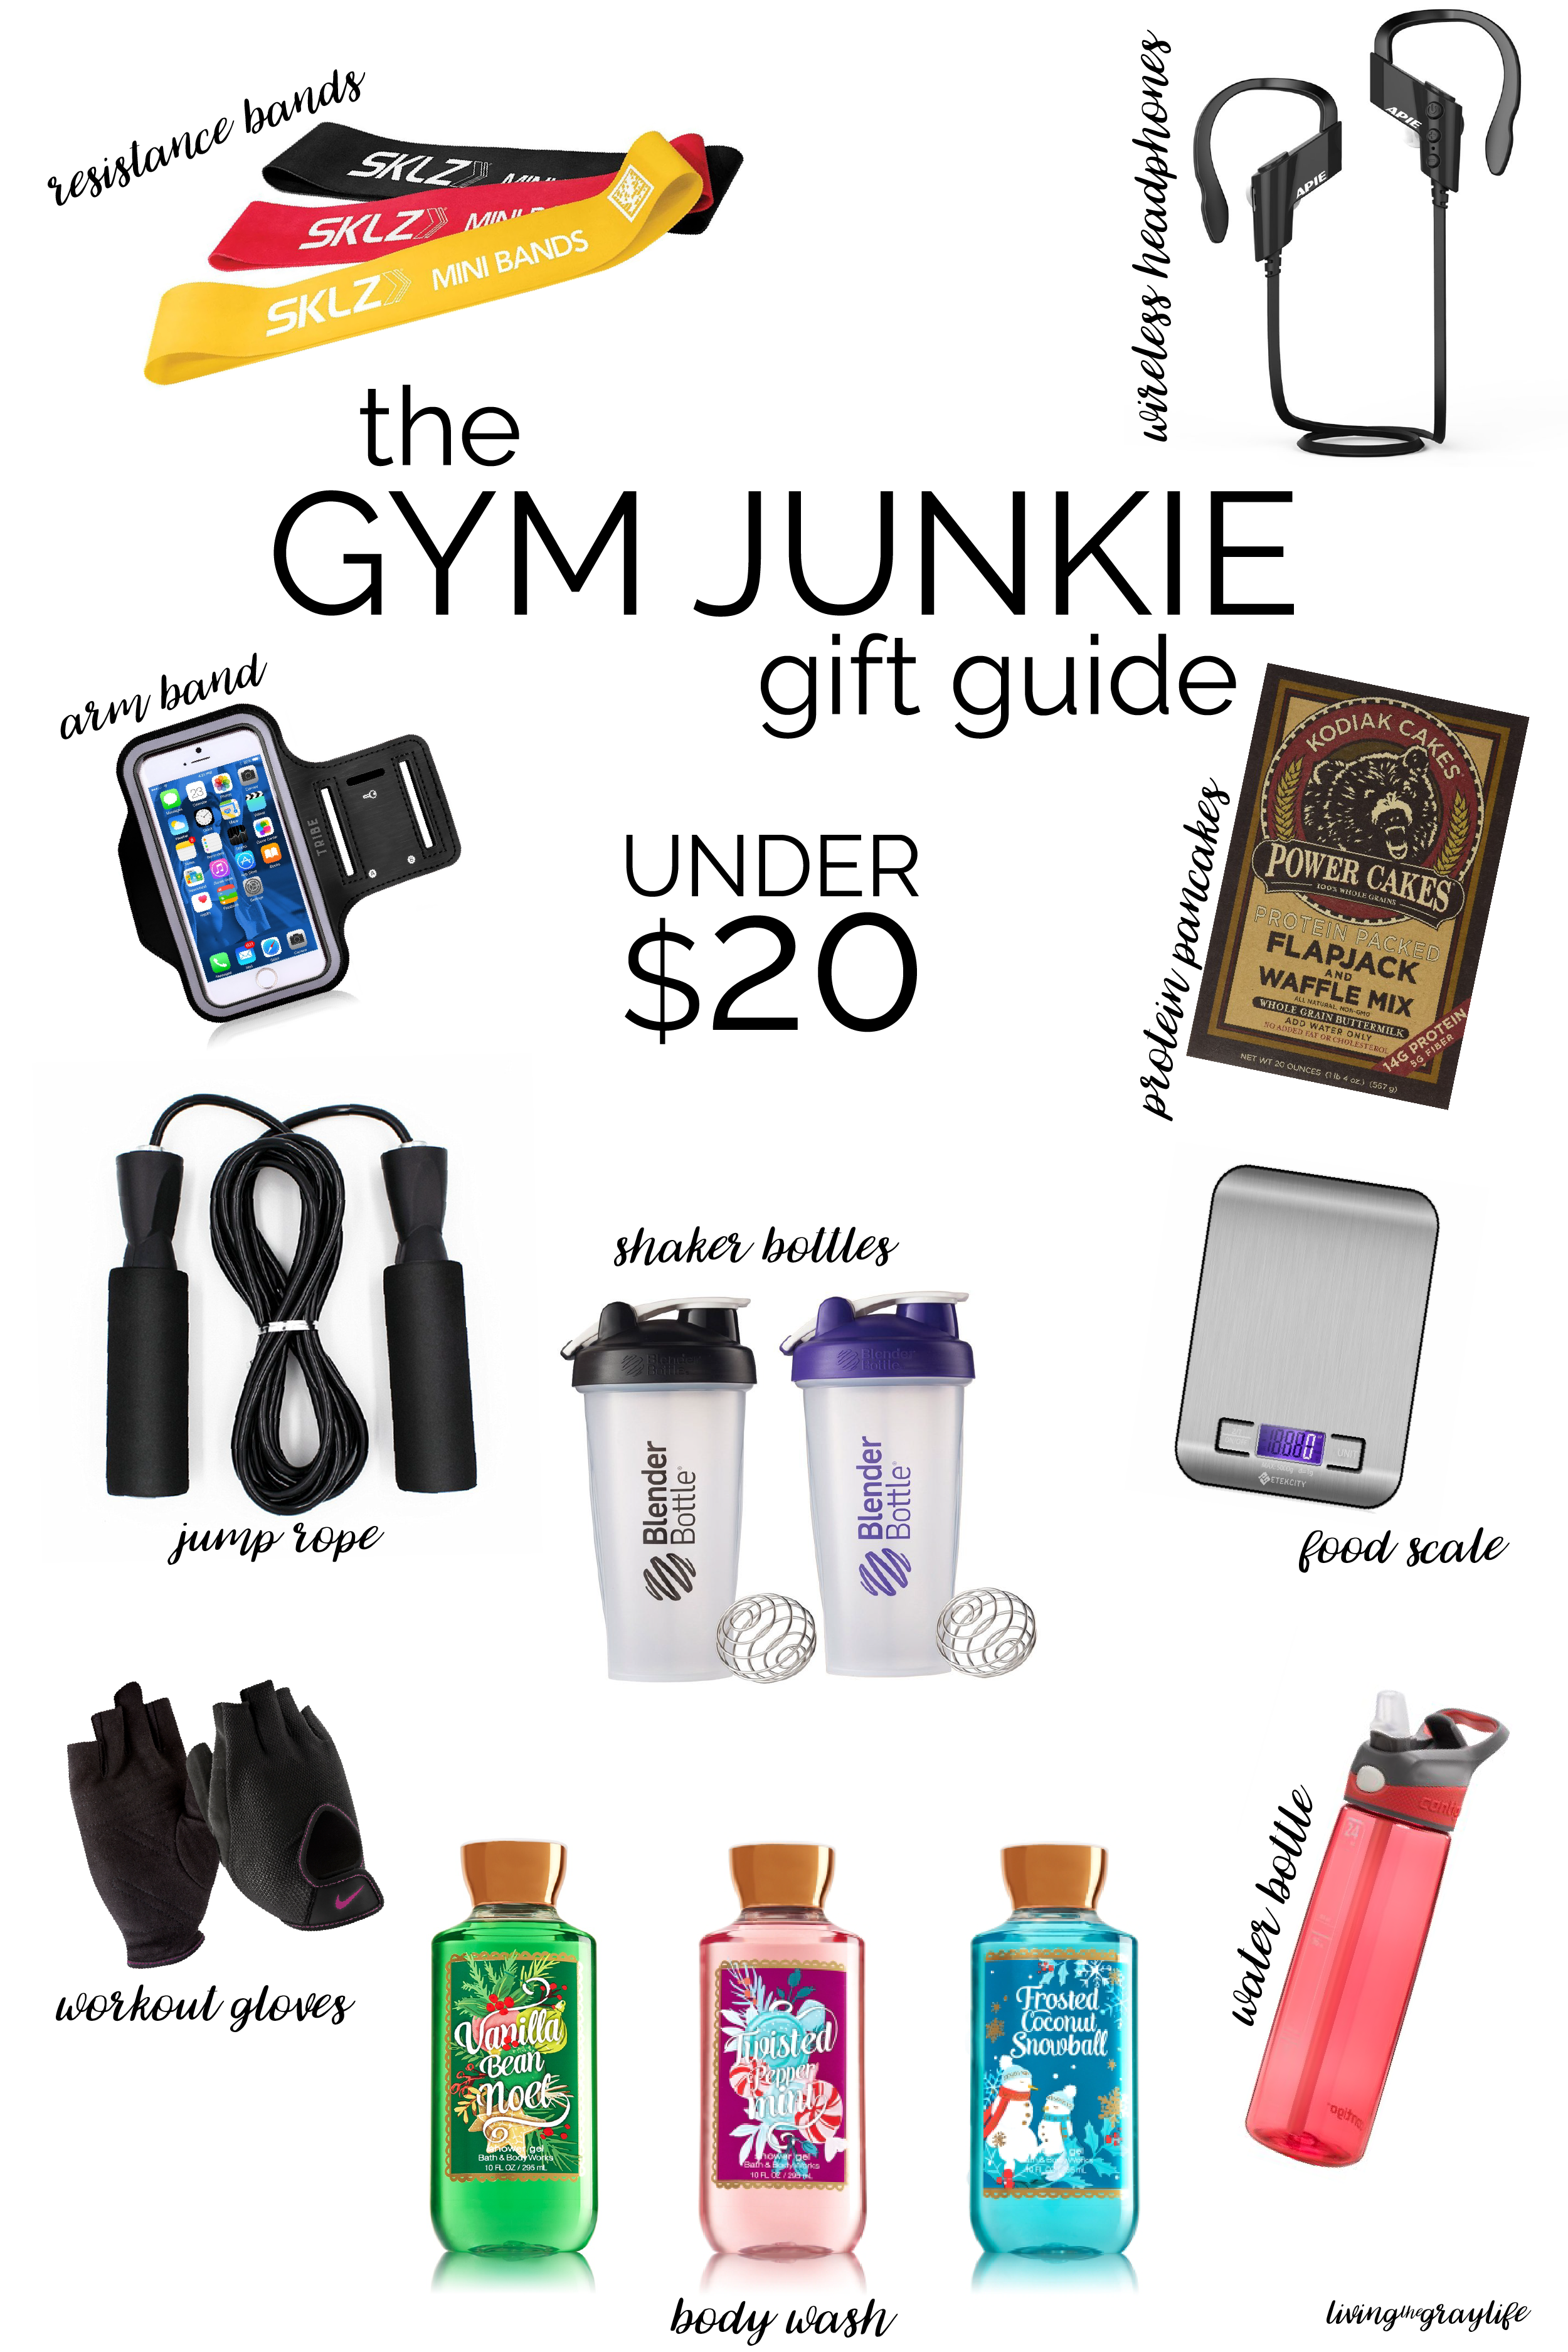 FITNESS GIFT GUIDE. Perfect gifts for the gym junkie in your life. All under $20! | Gym Junkie Gift Guide